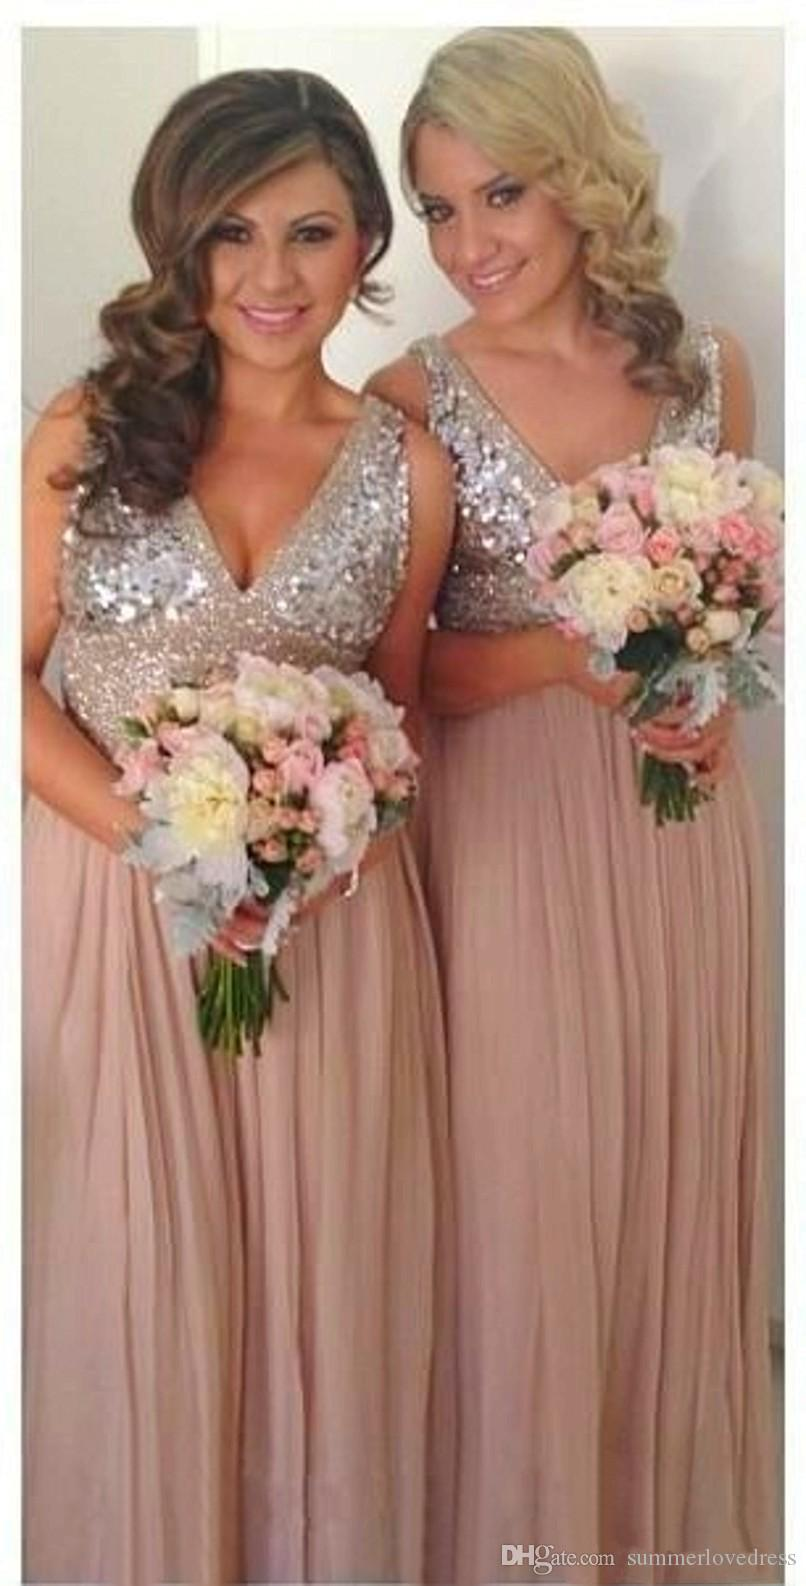 2017 New Elegant V Neck Chiffon Long Mermaid Bridesmaid Dresses Sequins Beaded Top Party Evening Dresses